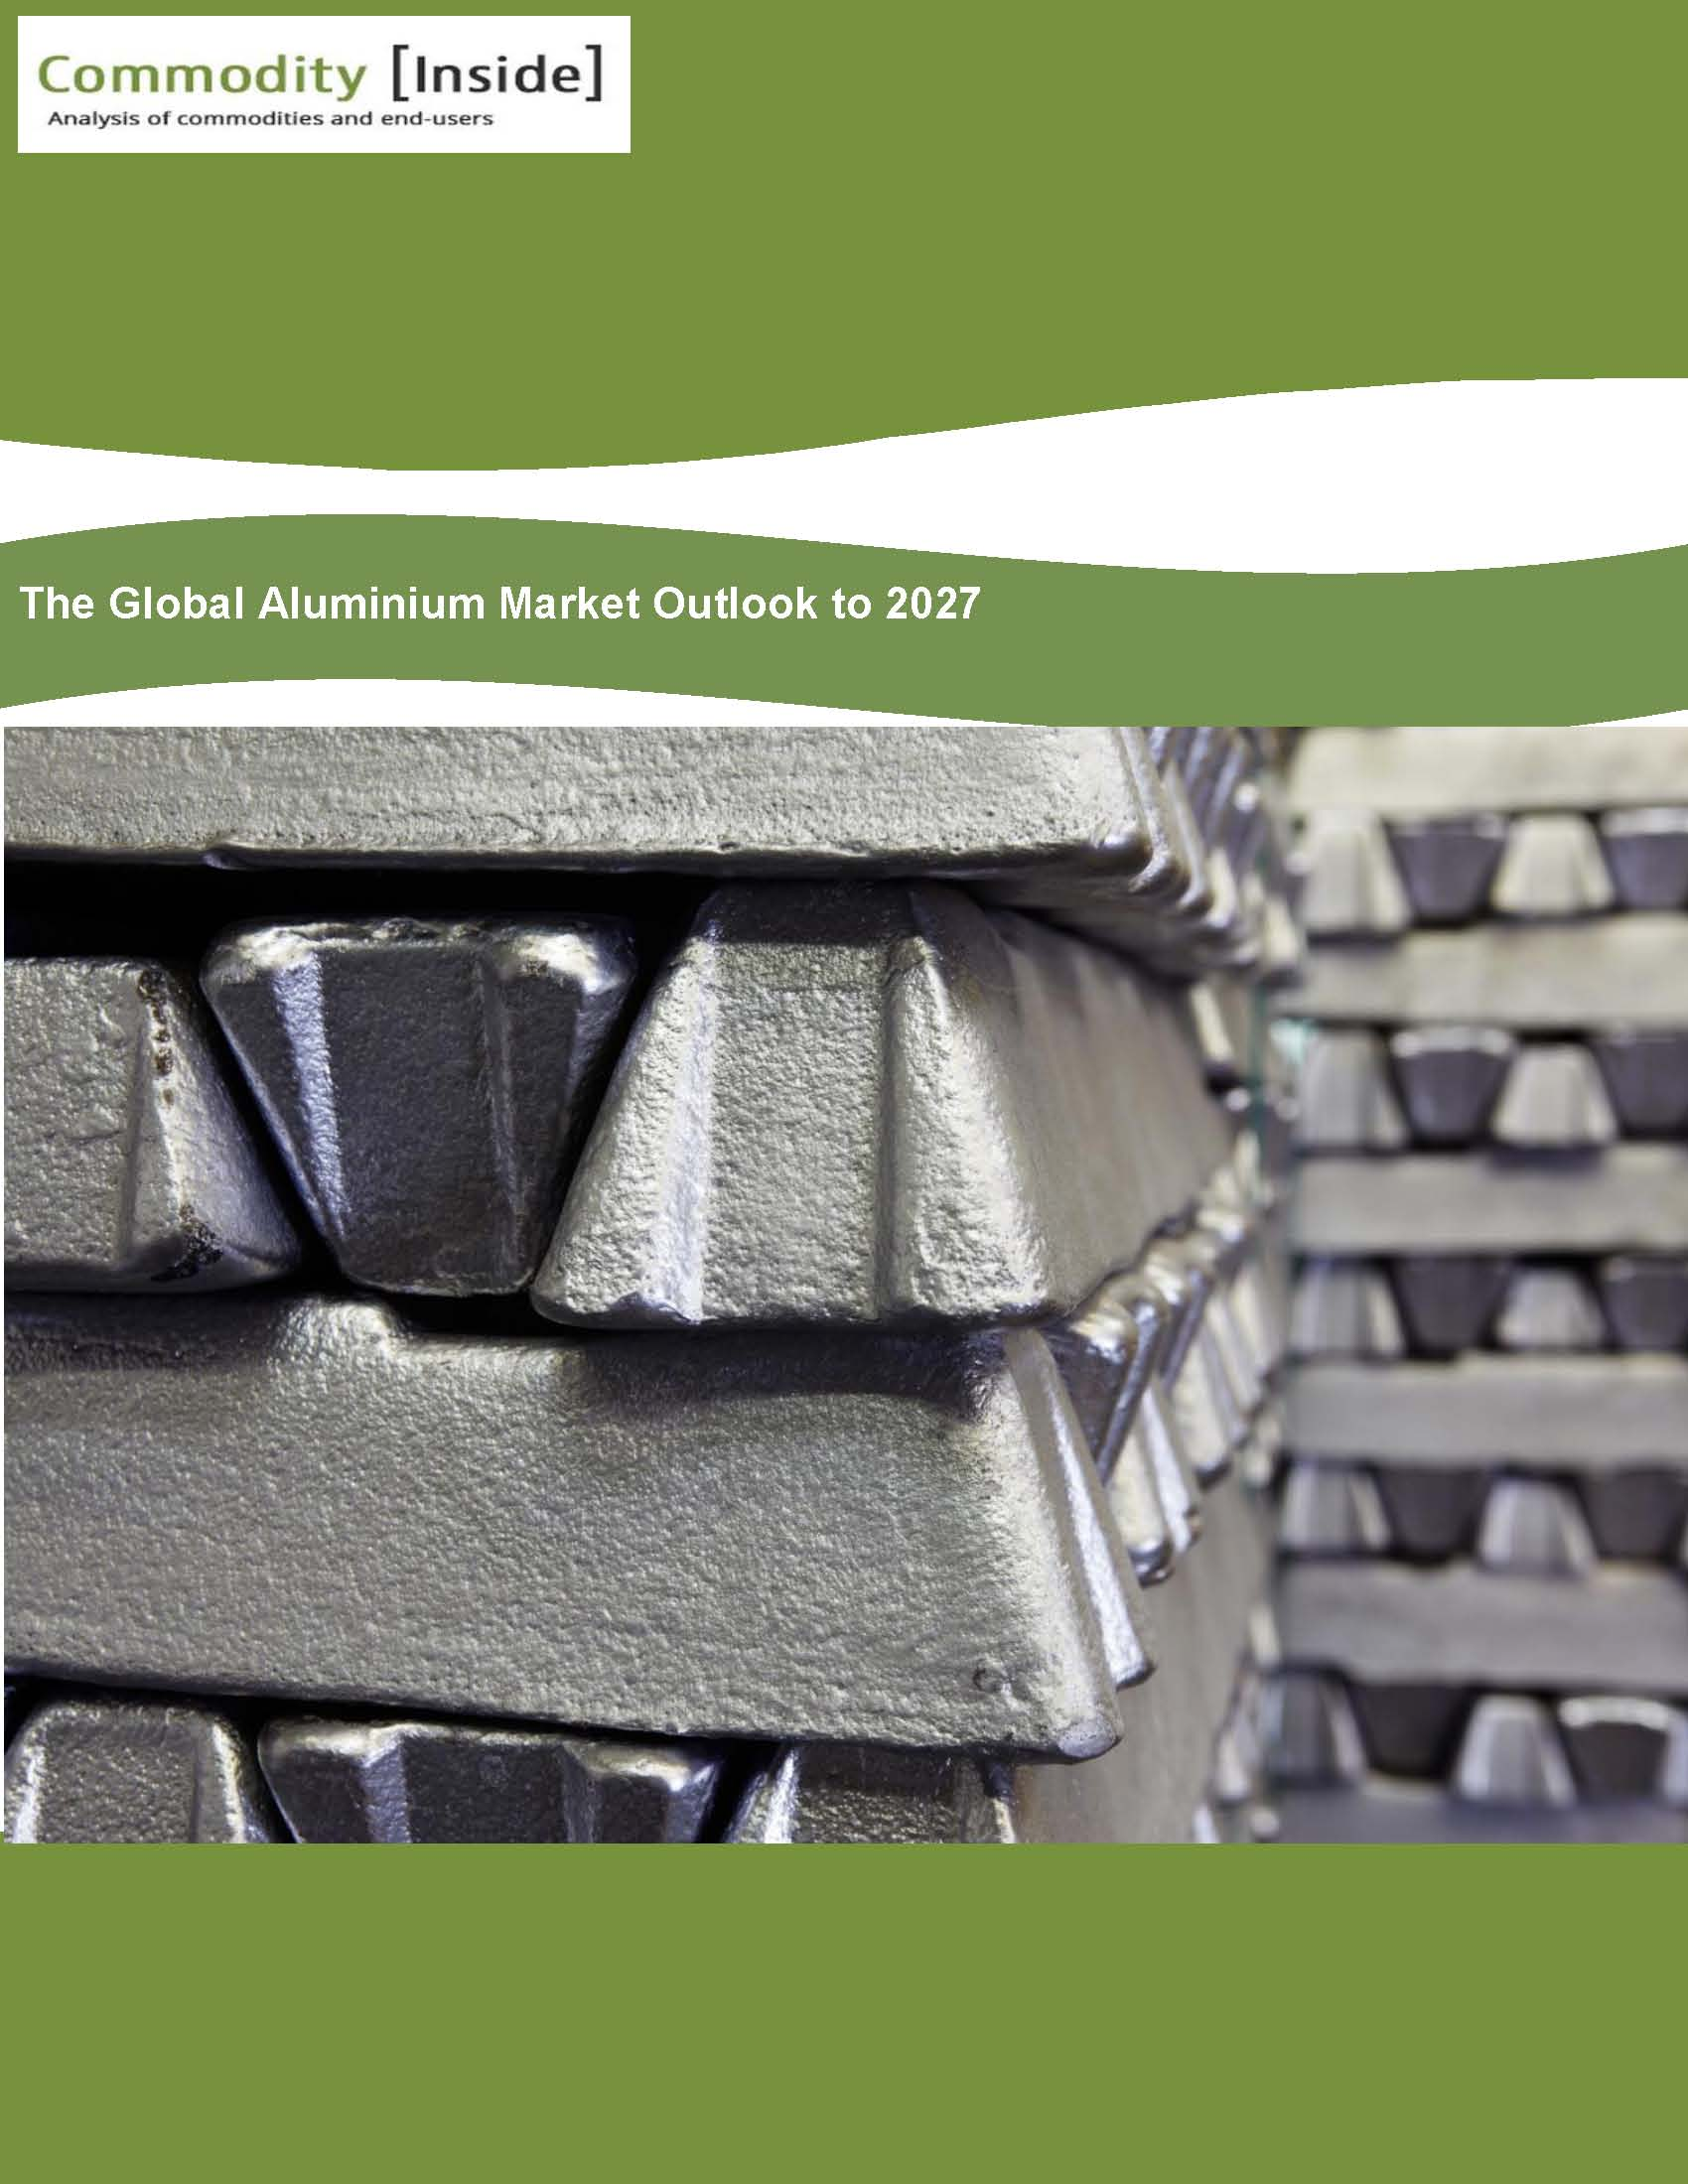 The Global Aluminium Market Outlook to 2027